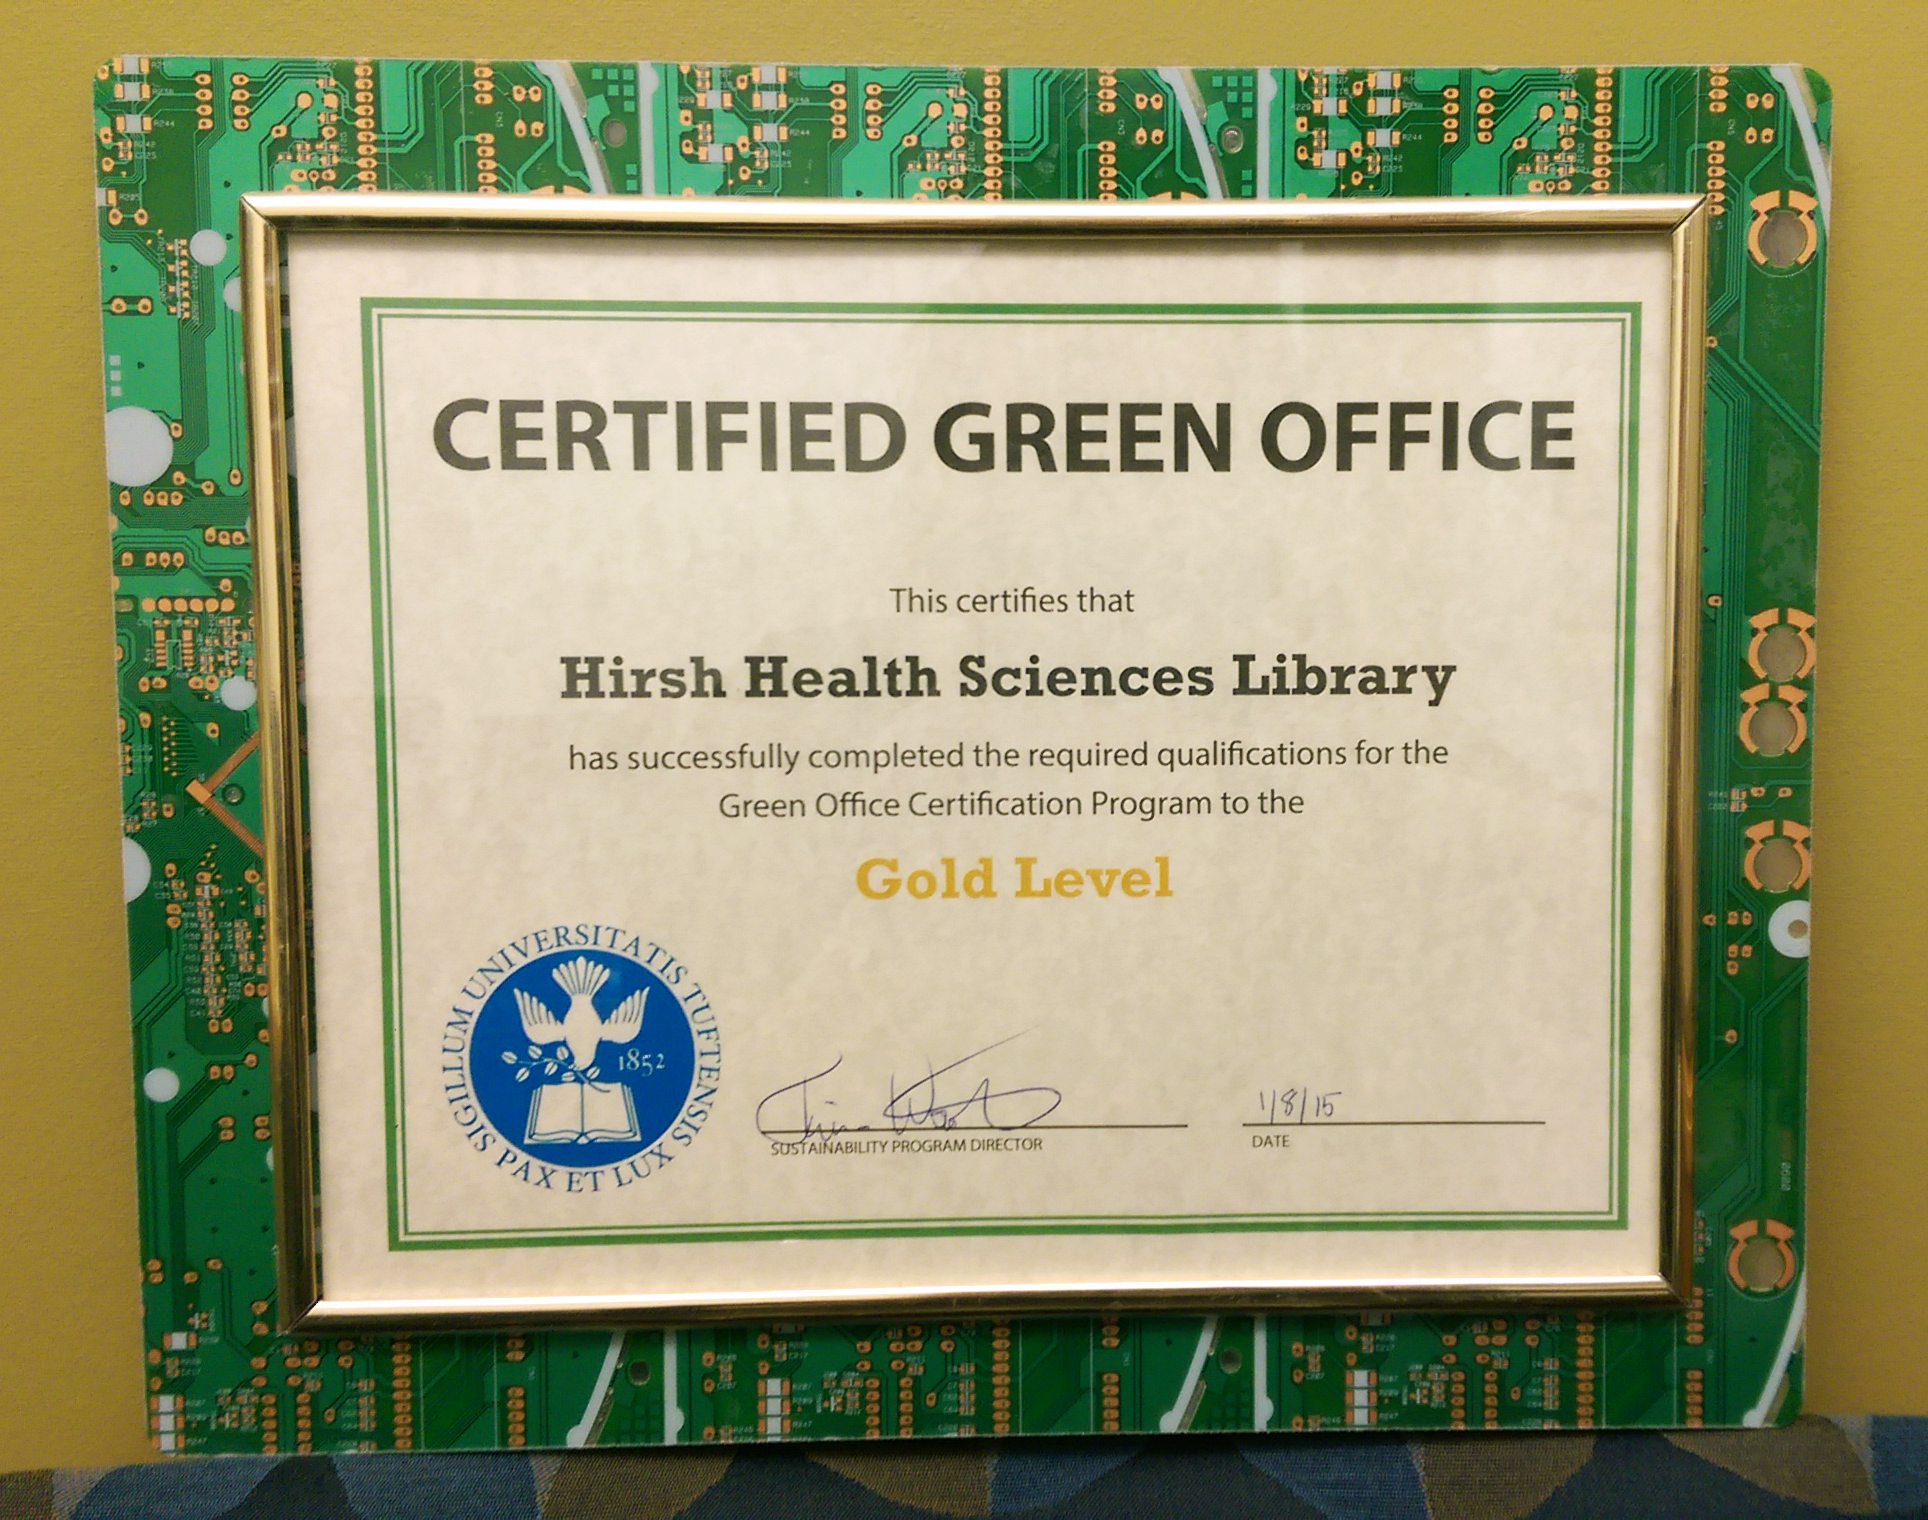 Hirsh Library Achieves Gold Level In Green Office Certification